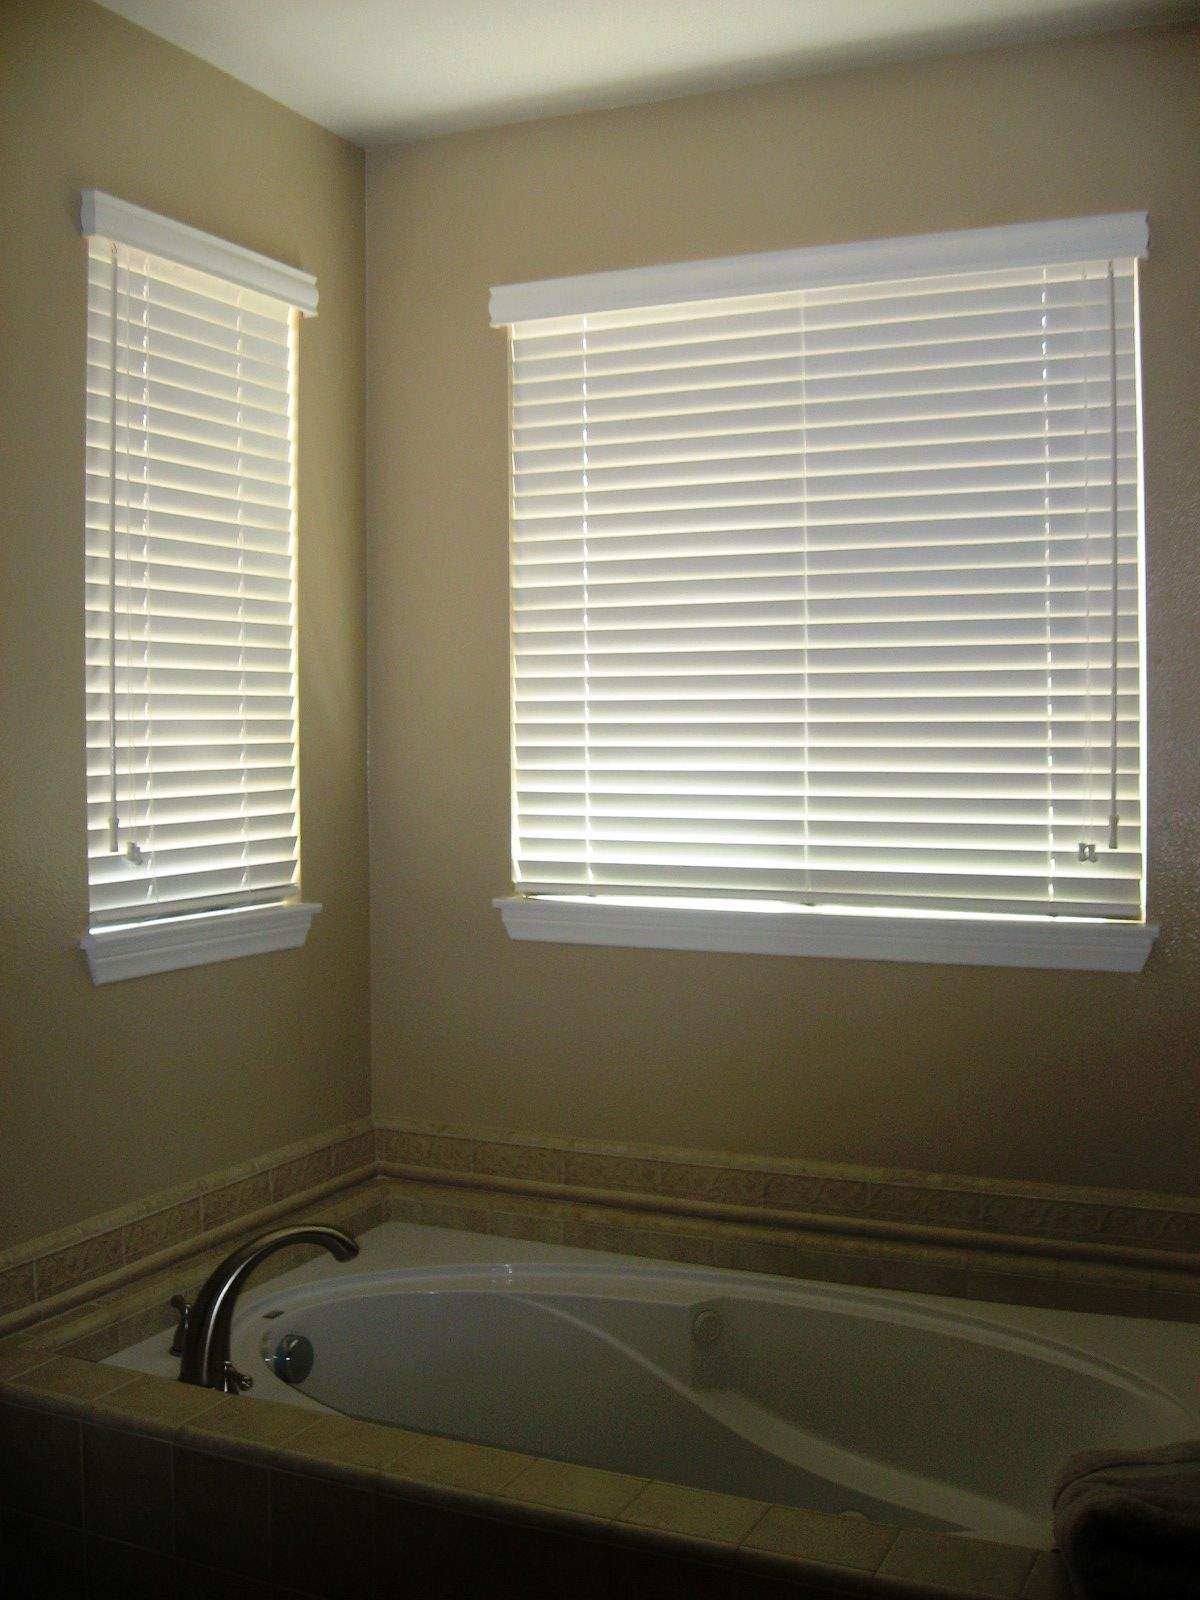 Window Contemporary White Roller Outside Mount Blinds